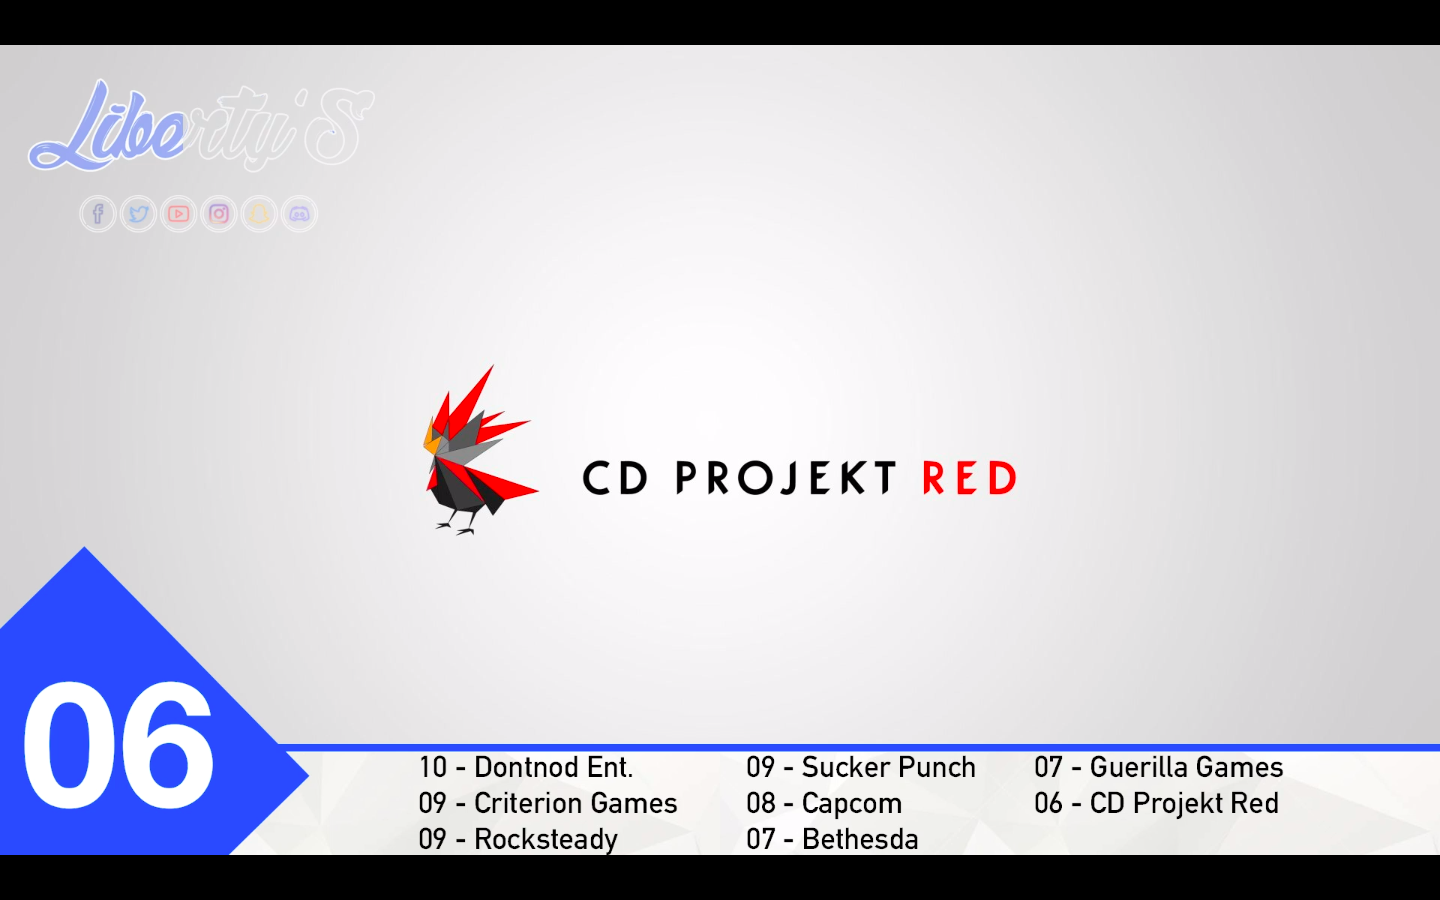 Top 06 - CD Projekt Red